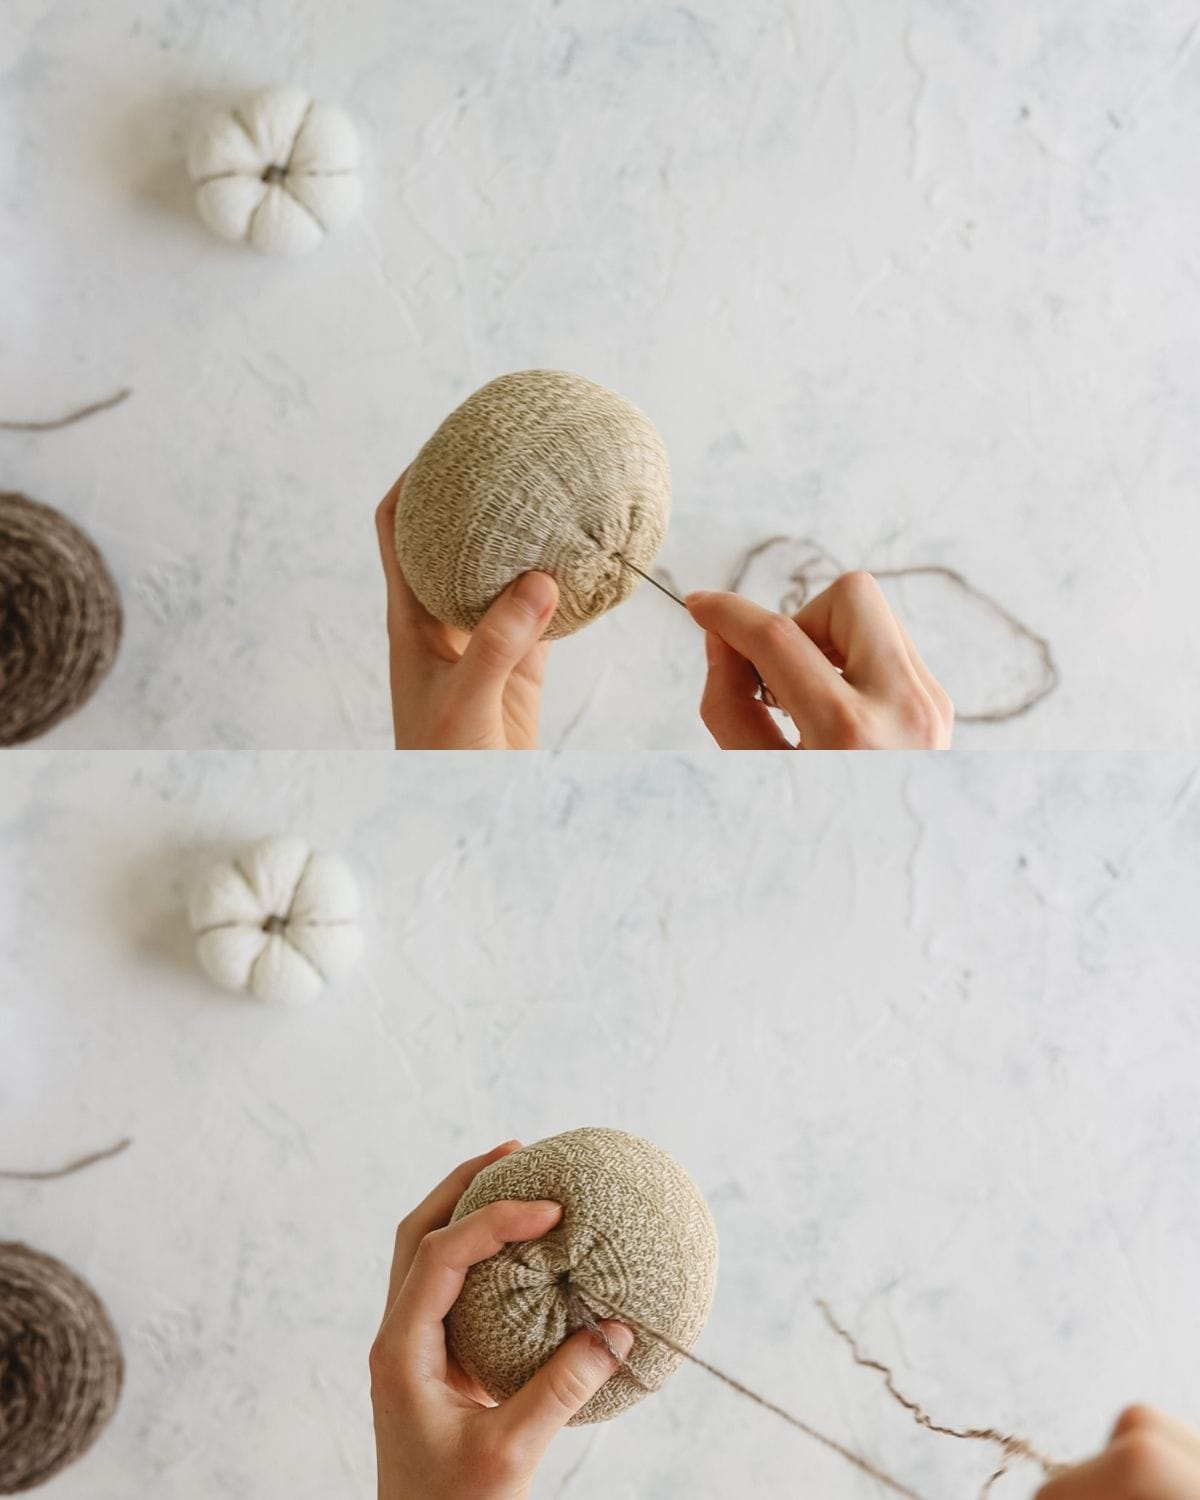 Two images showing how to sew grooves into a fabric pumpkin.